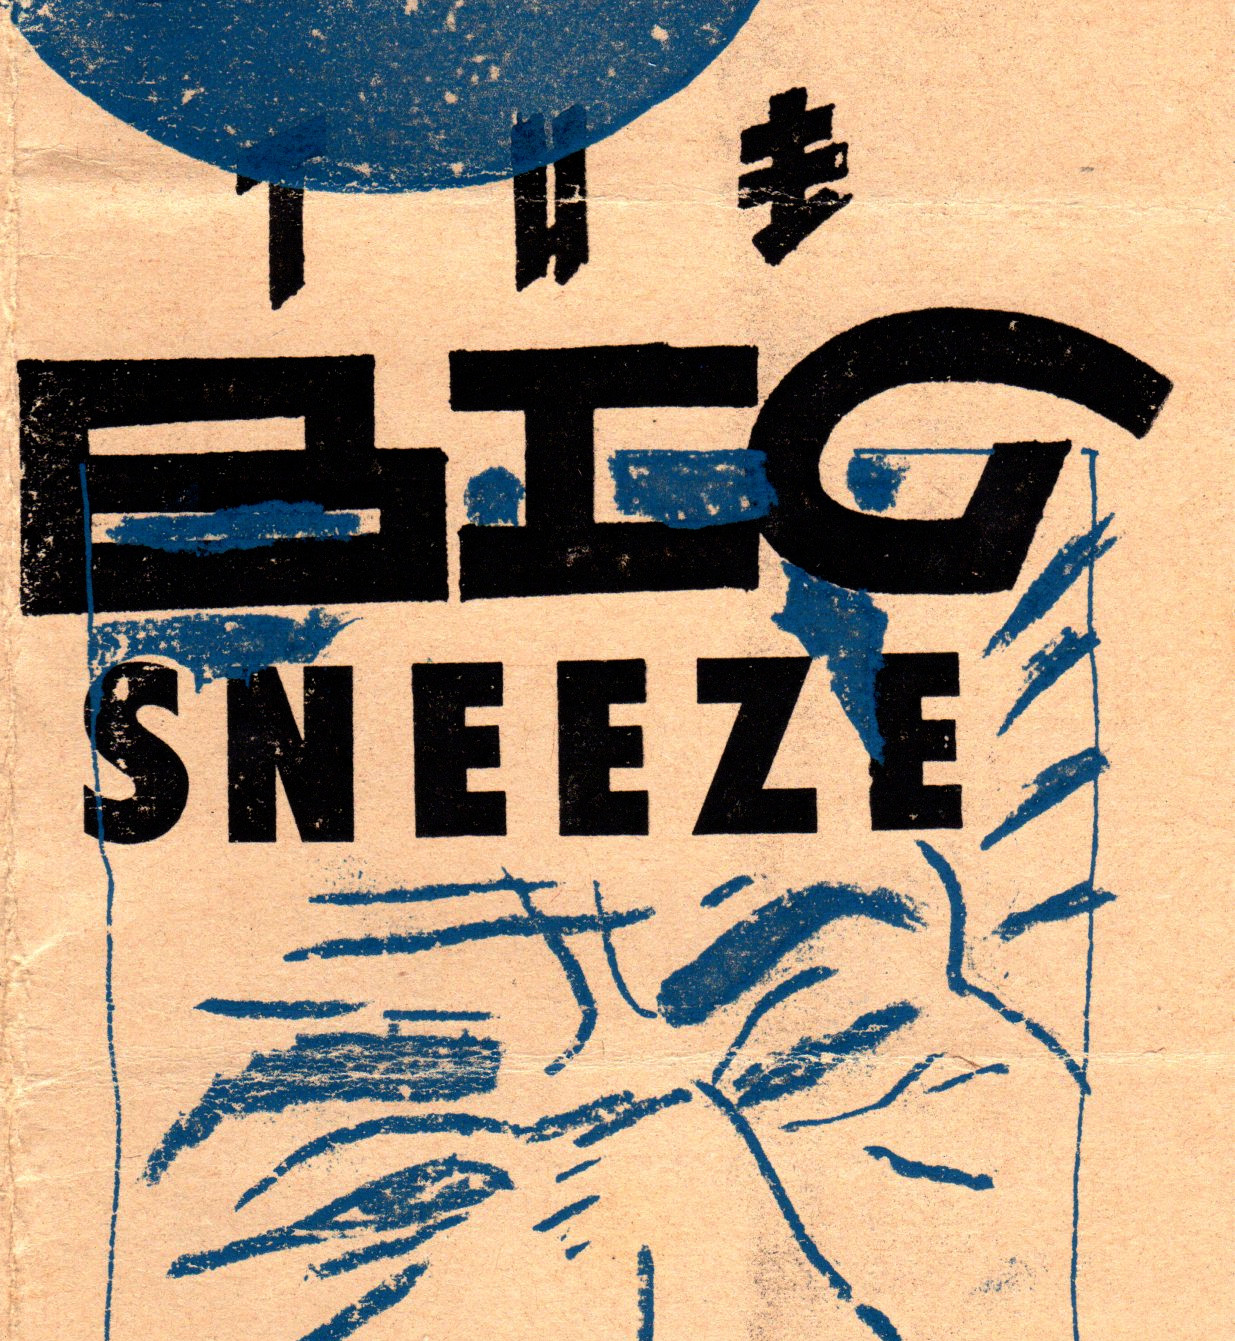 The Big Sneeze by Phoenix